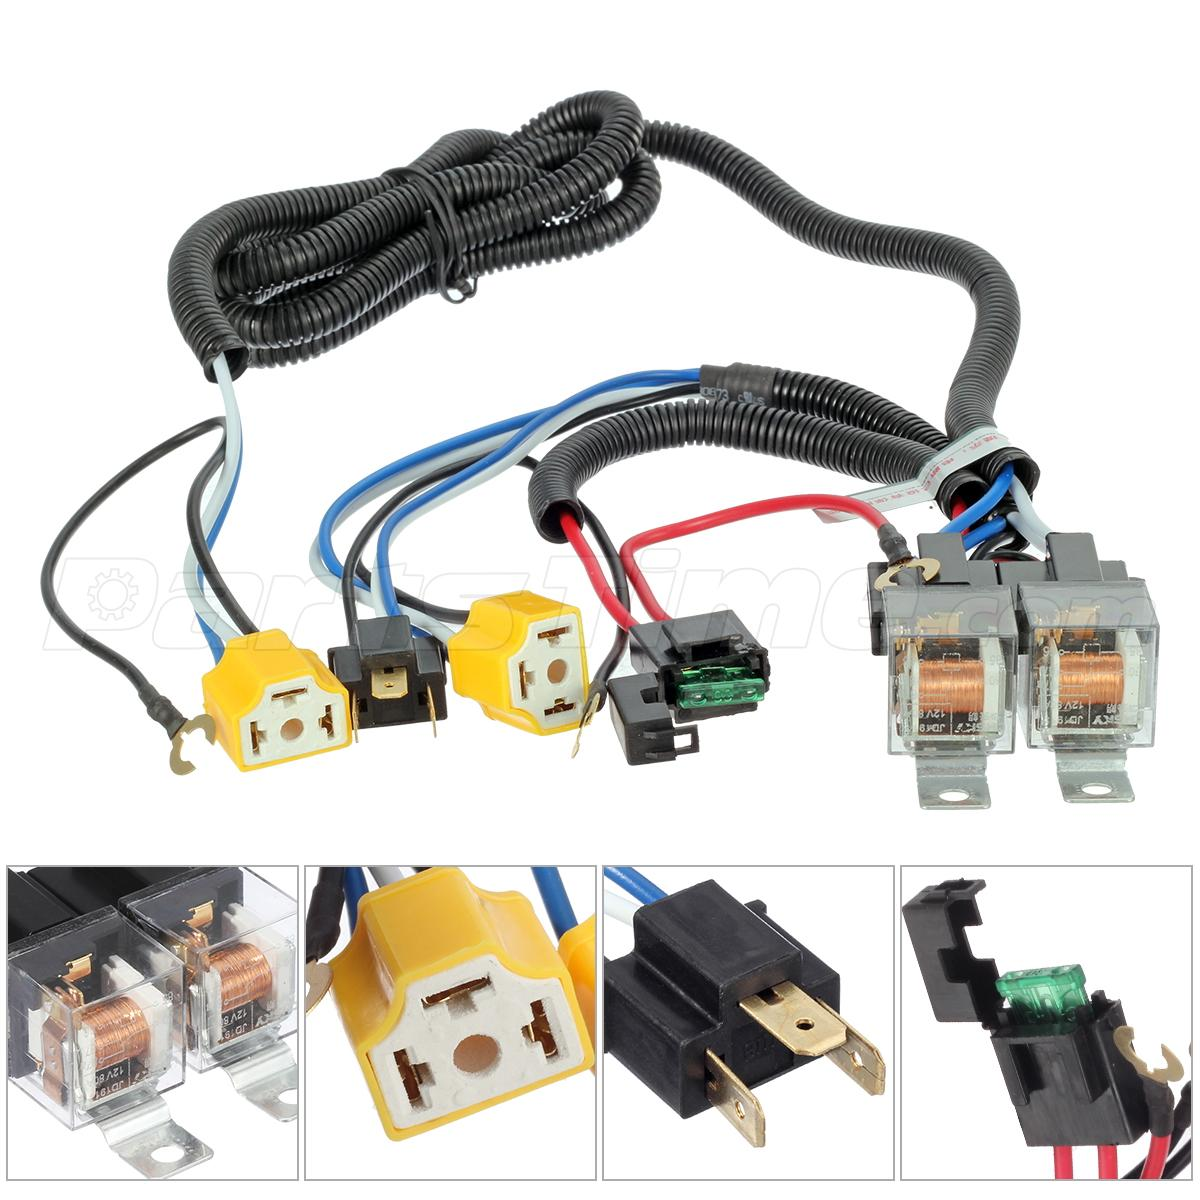 ceramic h headlight relay wiring harness headlamp light bulb ceramic h4 headlight relay wiring harness 2 headlamp light bulb socket plugs 7